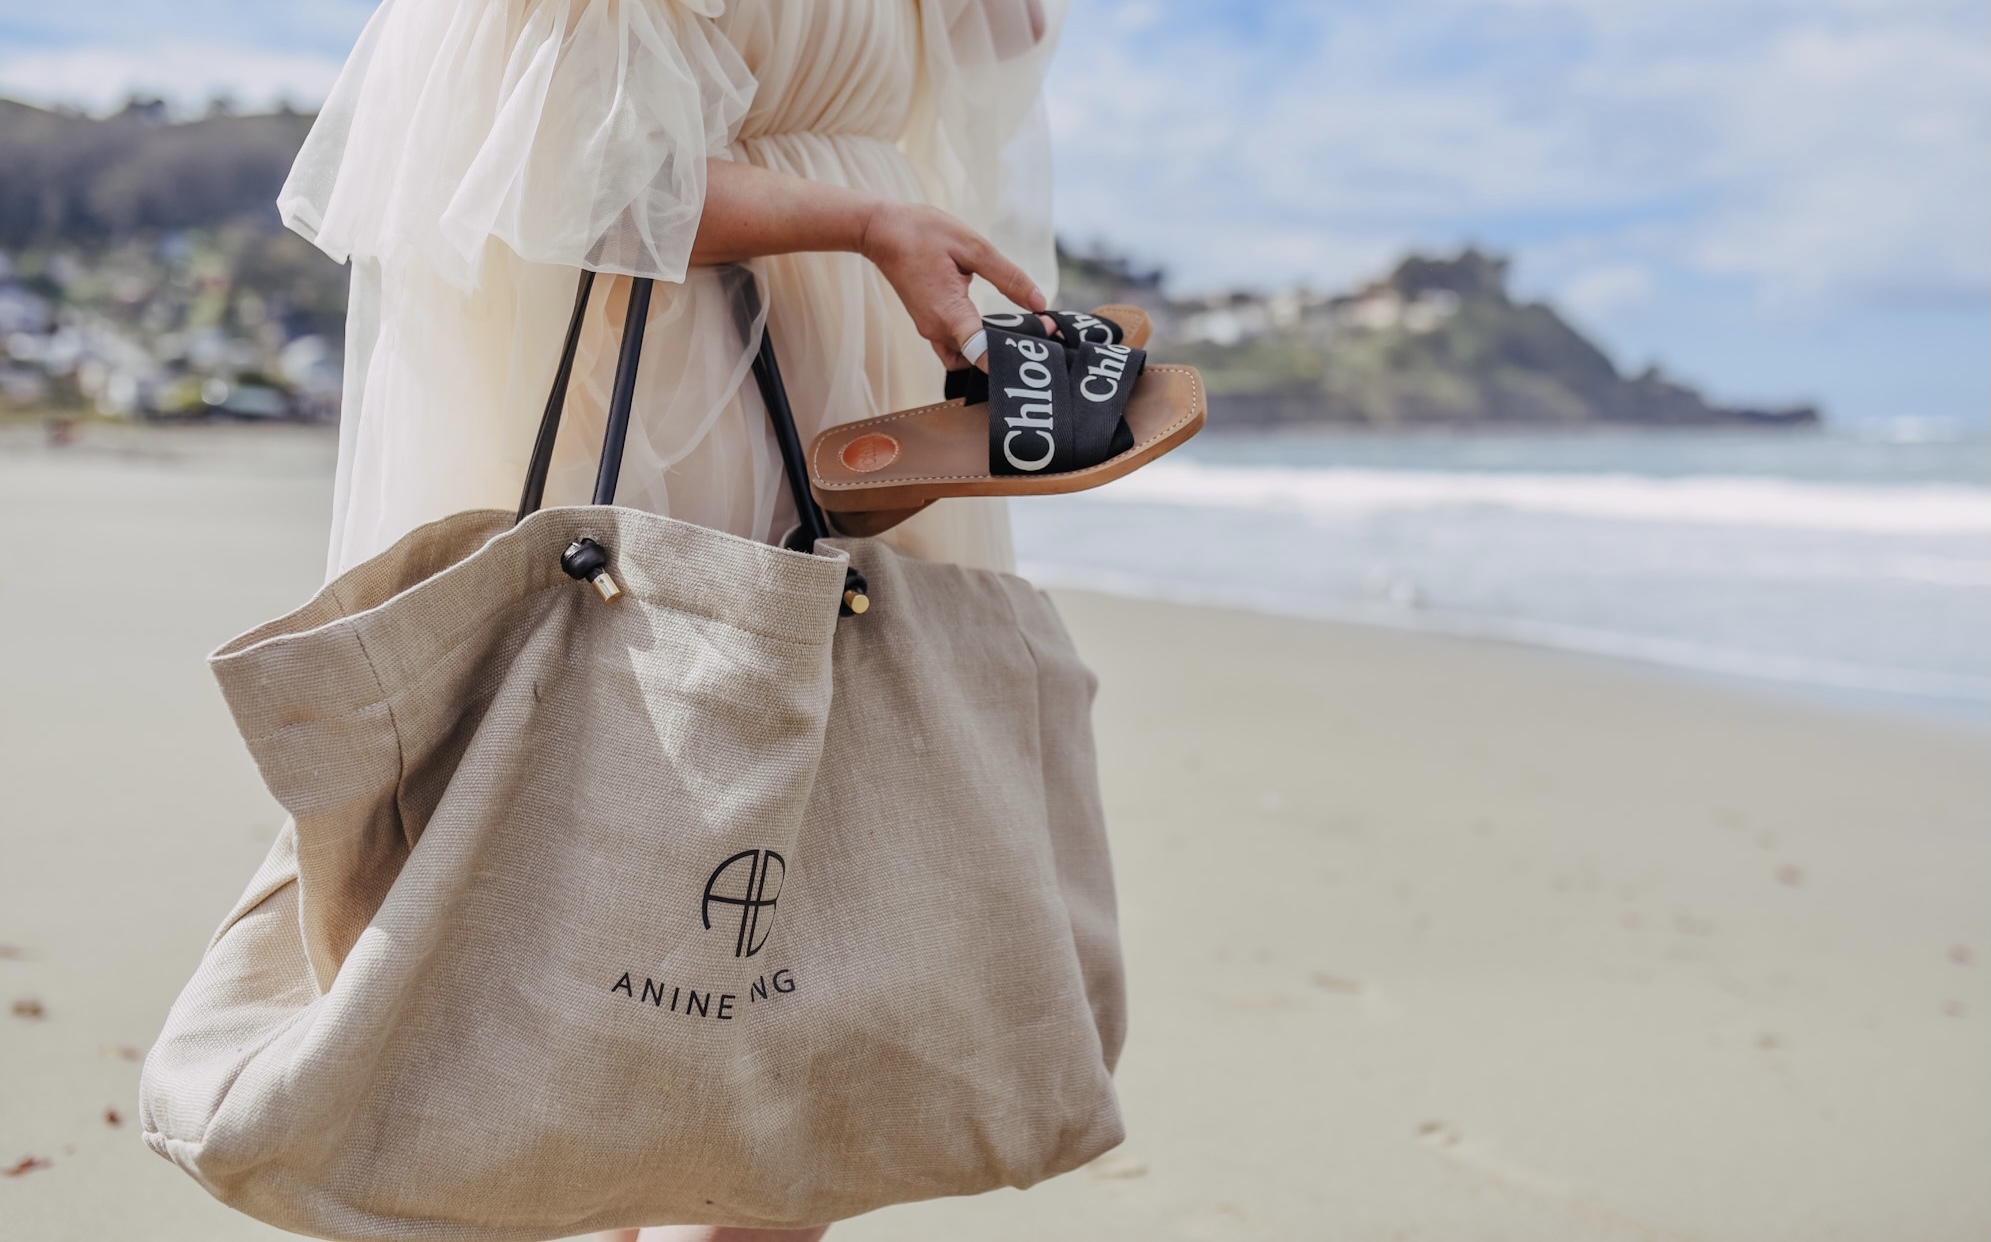 KatWalkSF holding the Chloé Woody Sandals in Pacifica